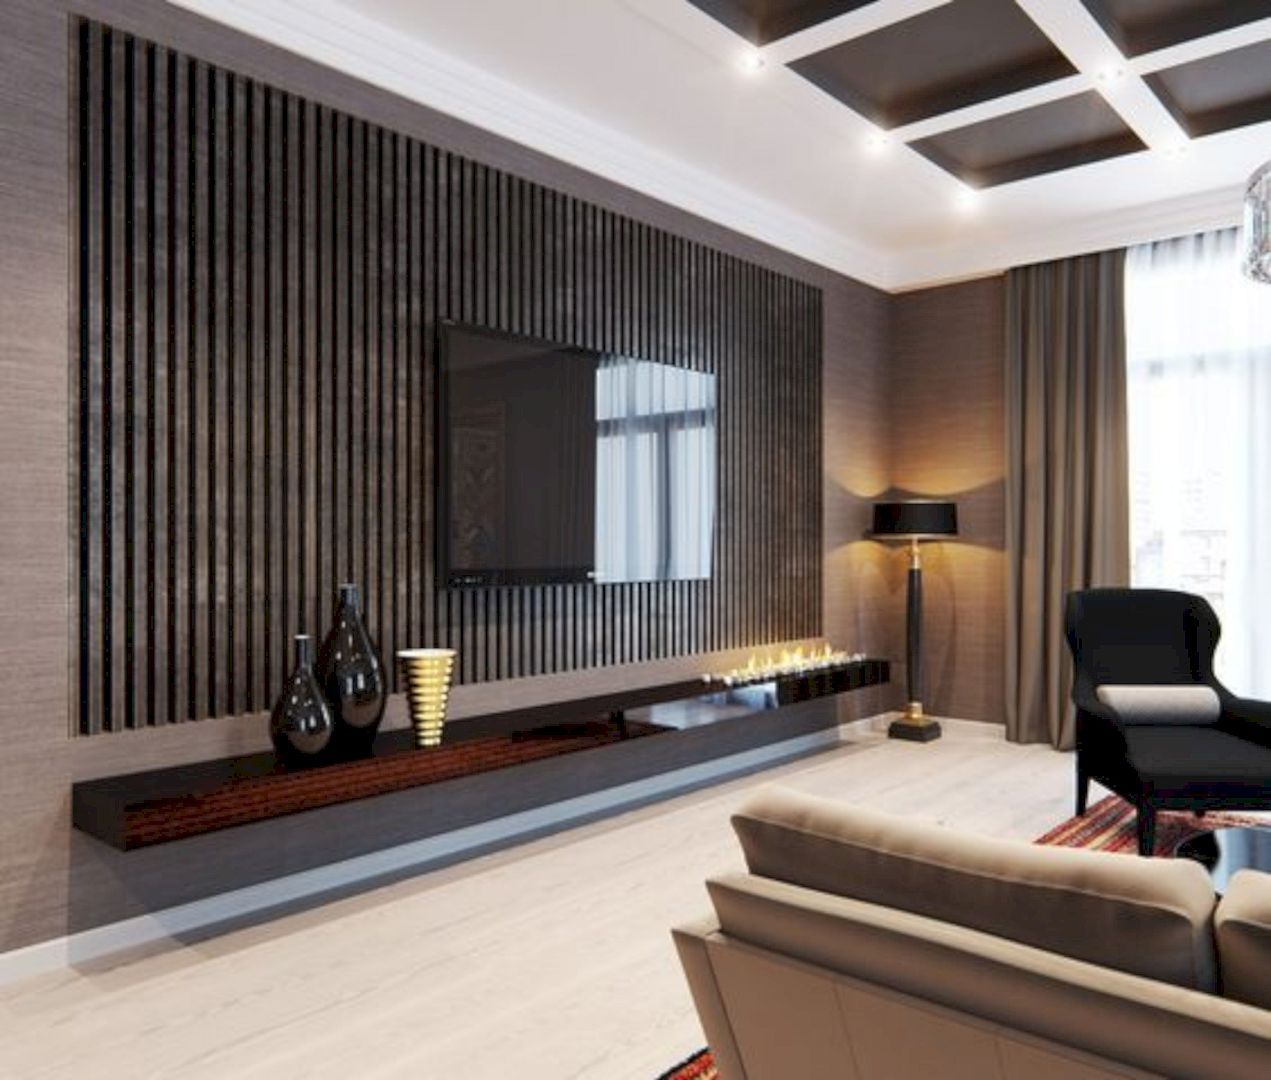 Wall House A Modern Residence With A System Of Layered Landscape Walls Stylish Apartment Decor Stylish Apartment Apartment Decor